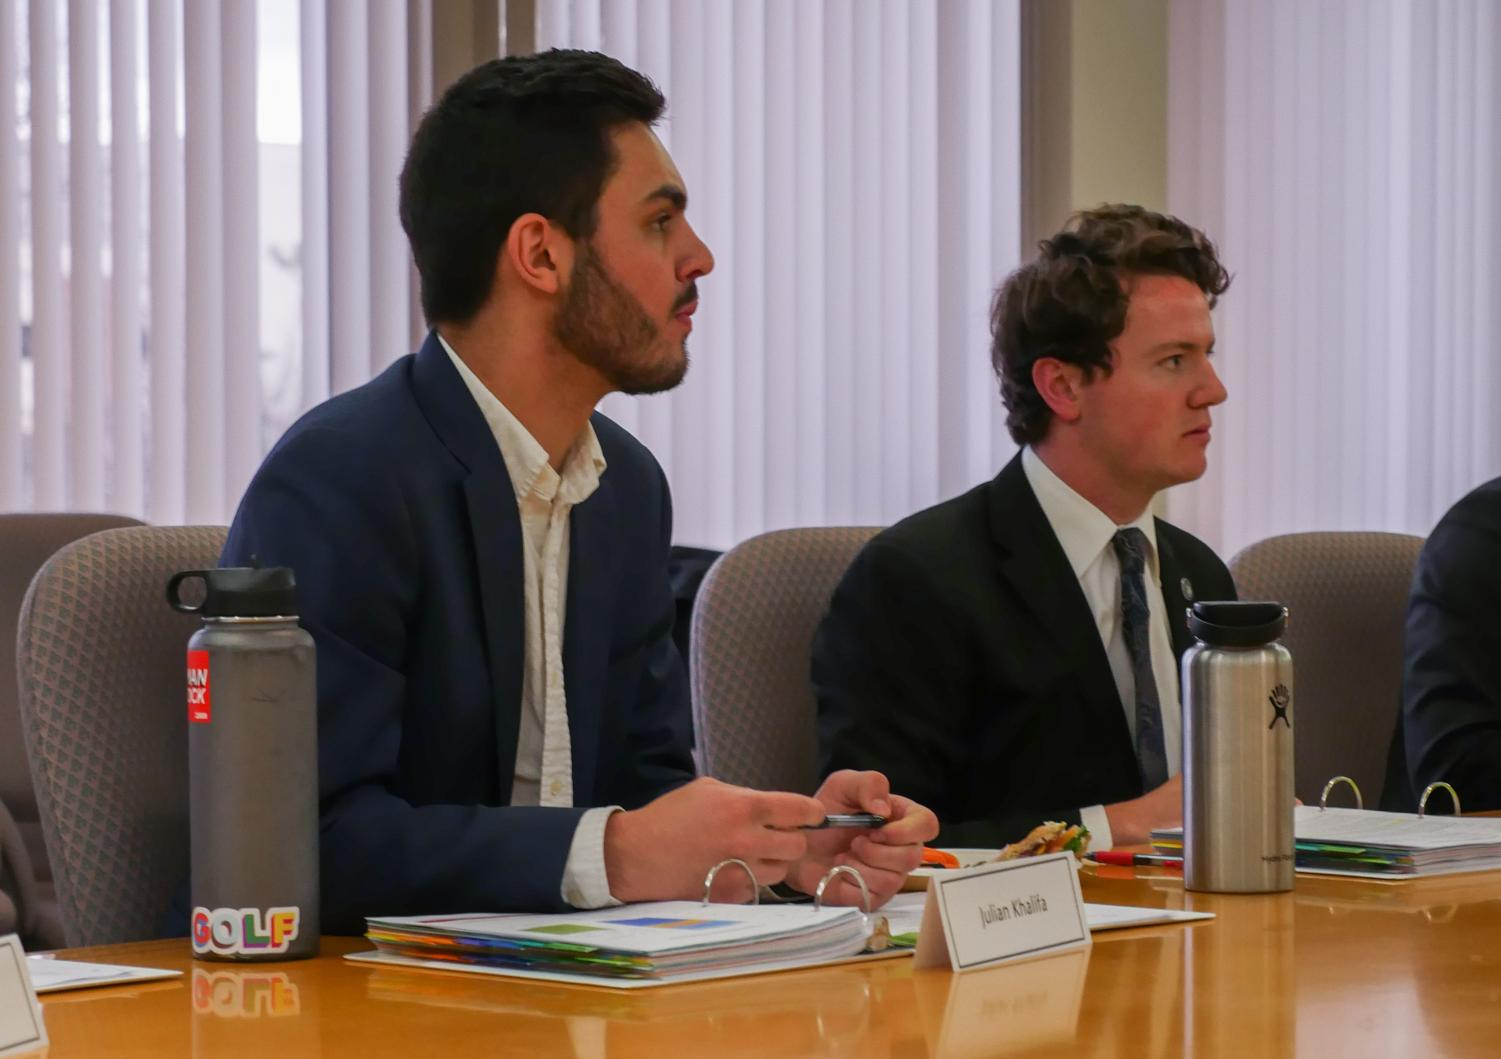 Julian Khalifa, undergraduate director of Students Book Corporation, left, and ASWSU Vice President Garrett Kalt listen to presentations during the Services and Activities meeting.